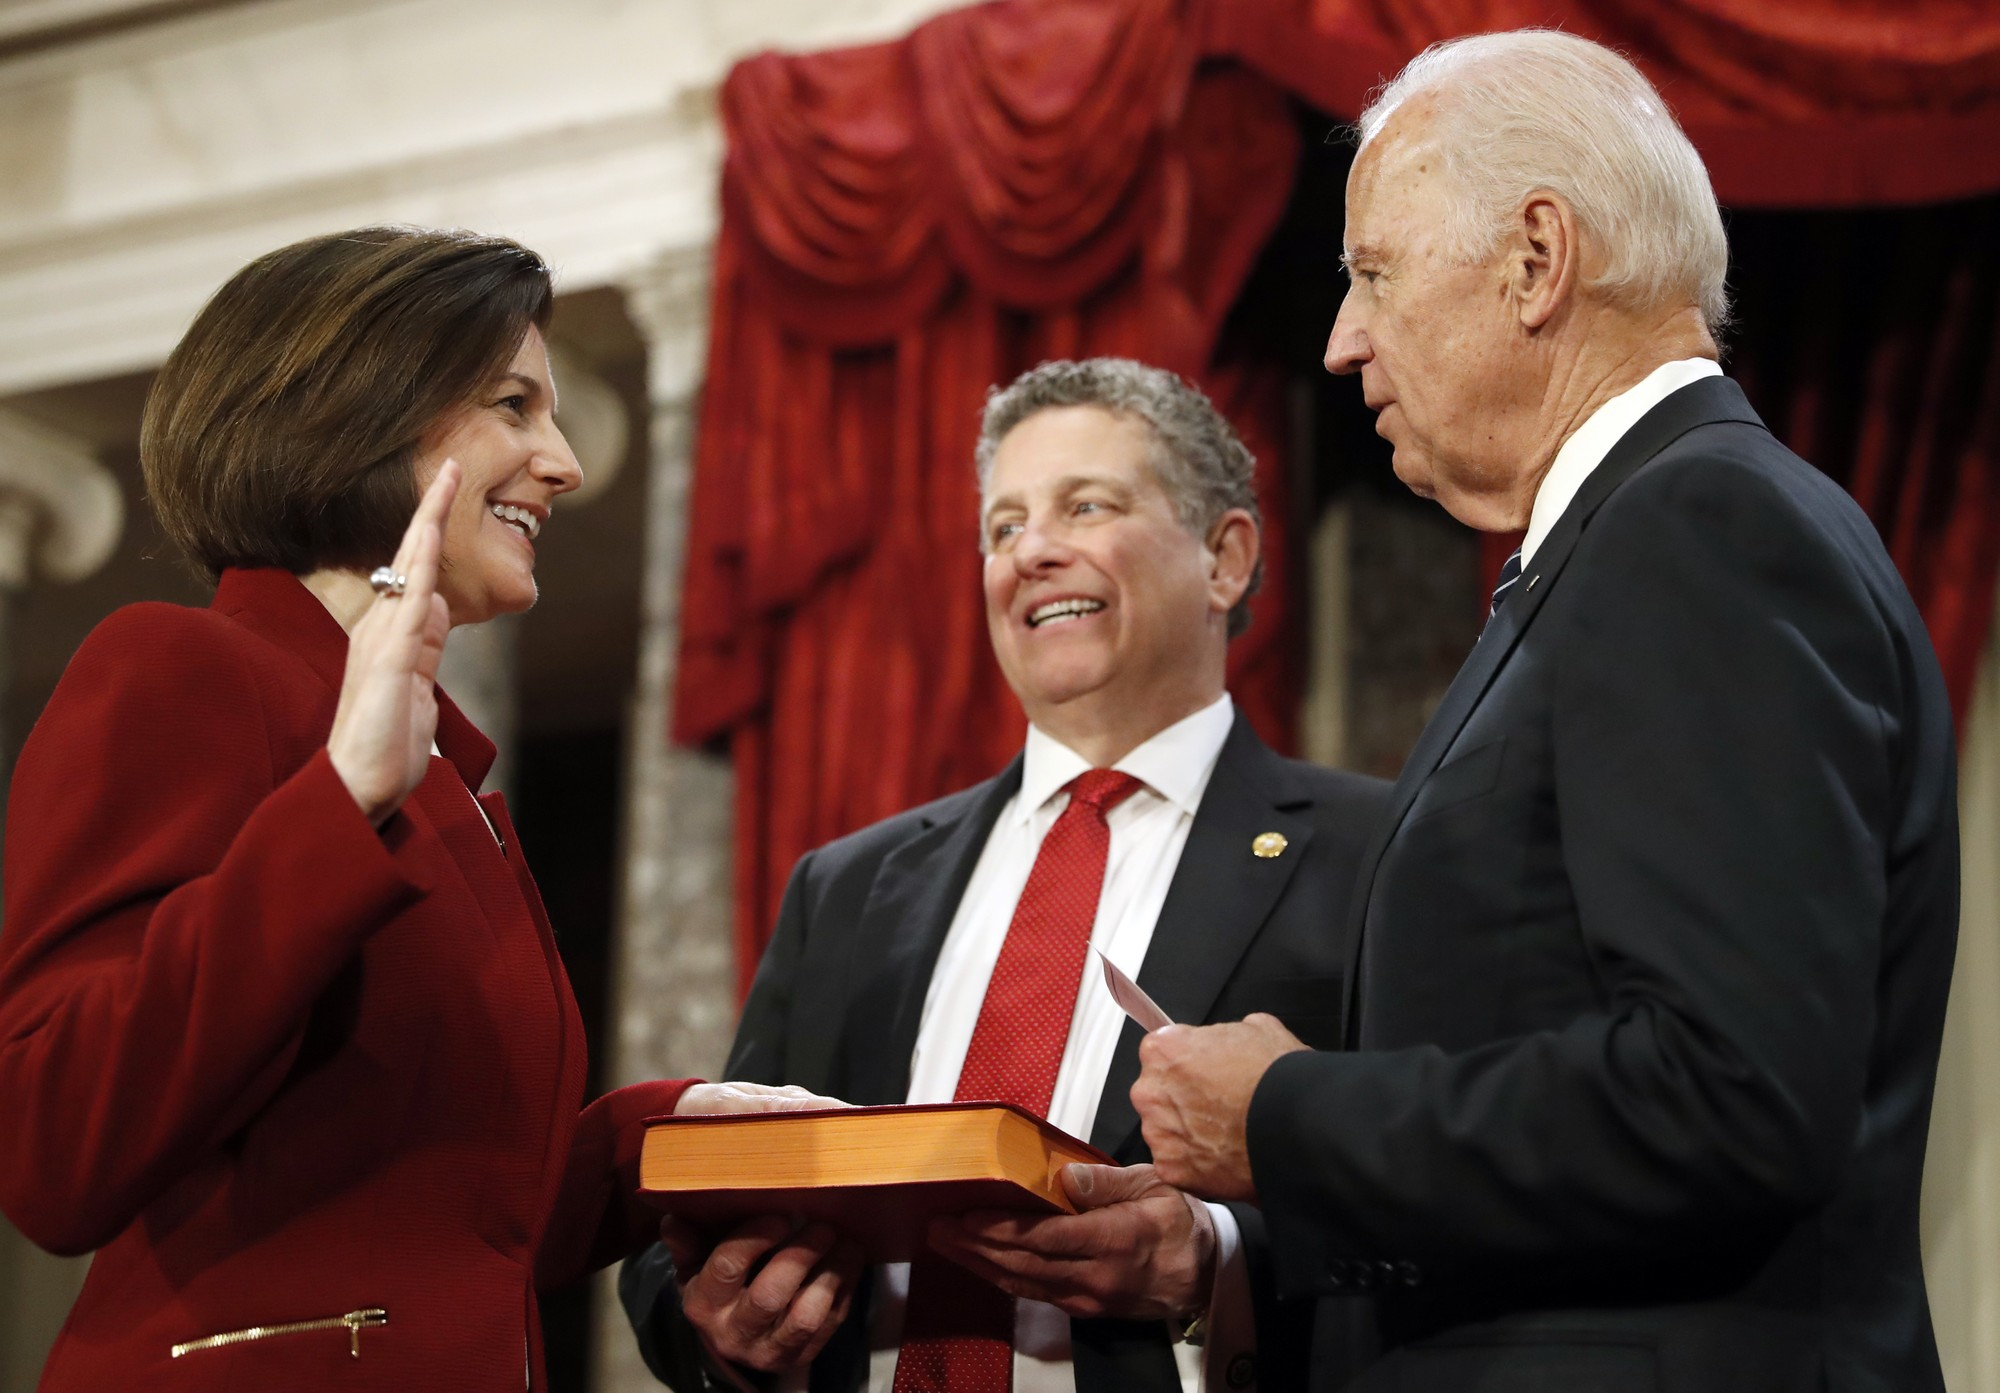 Vice President Joe Biden, right, administers the Senate oath of office to Sen. Catherine Cortez Masto, D-Nev., during a mock swearing in ceremony in the Old Senate Chamber on Capitol Hill in Washington, Tuesday, Jan. 3, 2017, as the 115th Congress begins. Cortez Masto is a Gonzaga University alumna and the first Latina woman elected to Congress. (AP Photo/Alex Brandon)